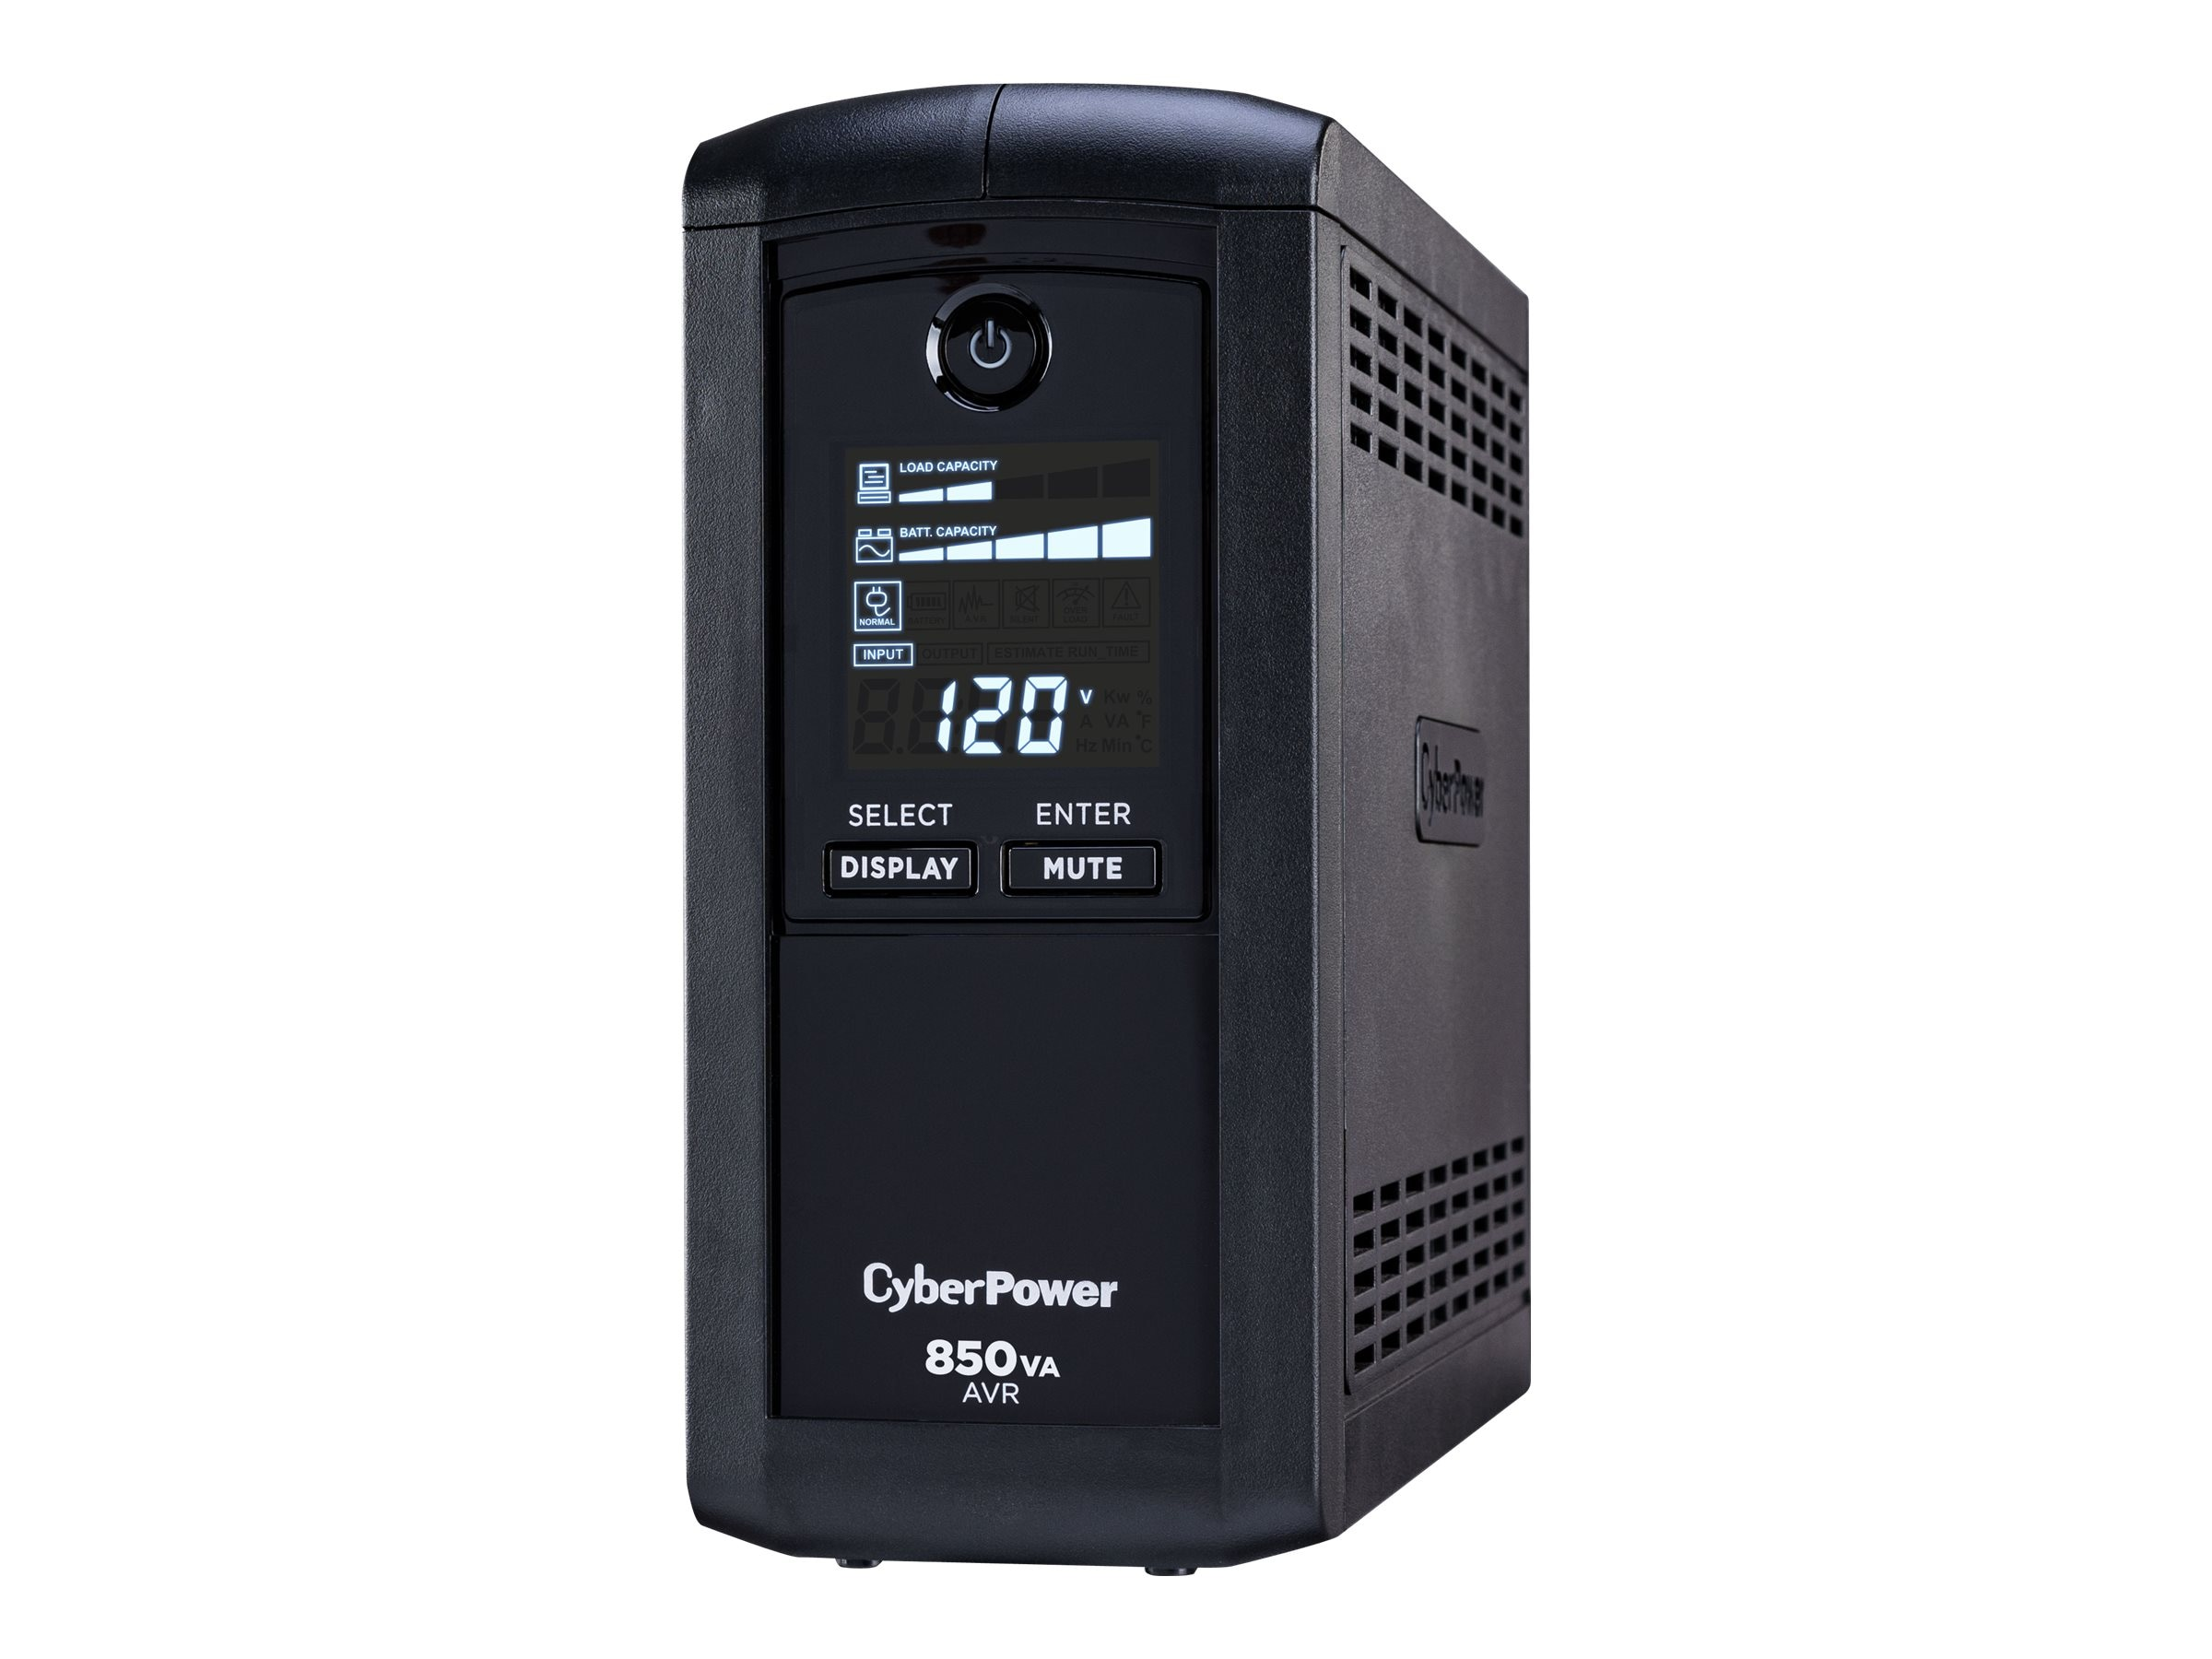 CyberPower 850VA 510W UPS with AVR, (9) Outlet RJ-11 RJ-45 Coax Tower LCD, Instant Rebate - Save $5